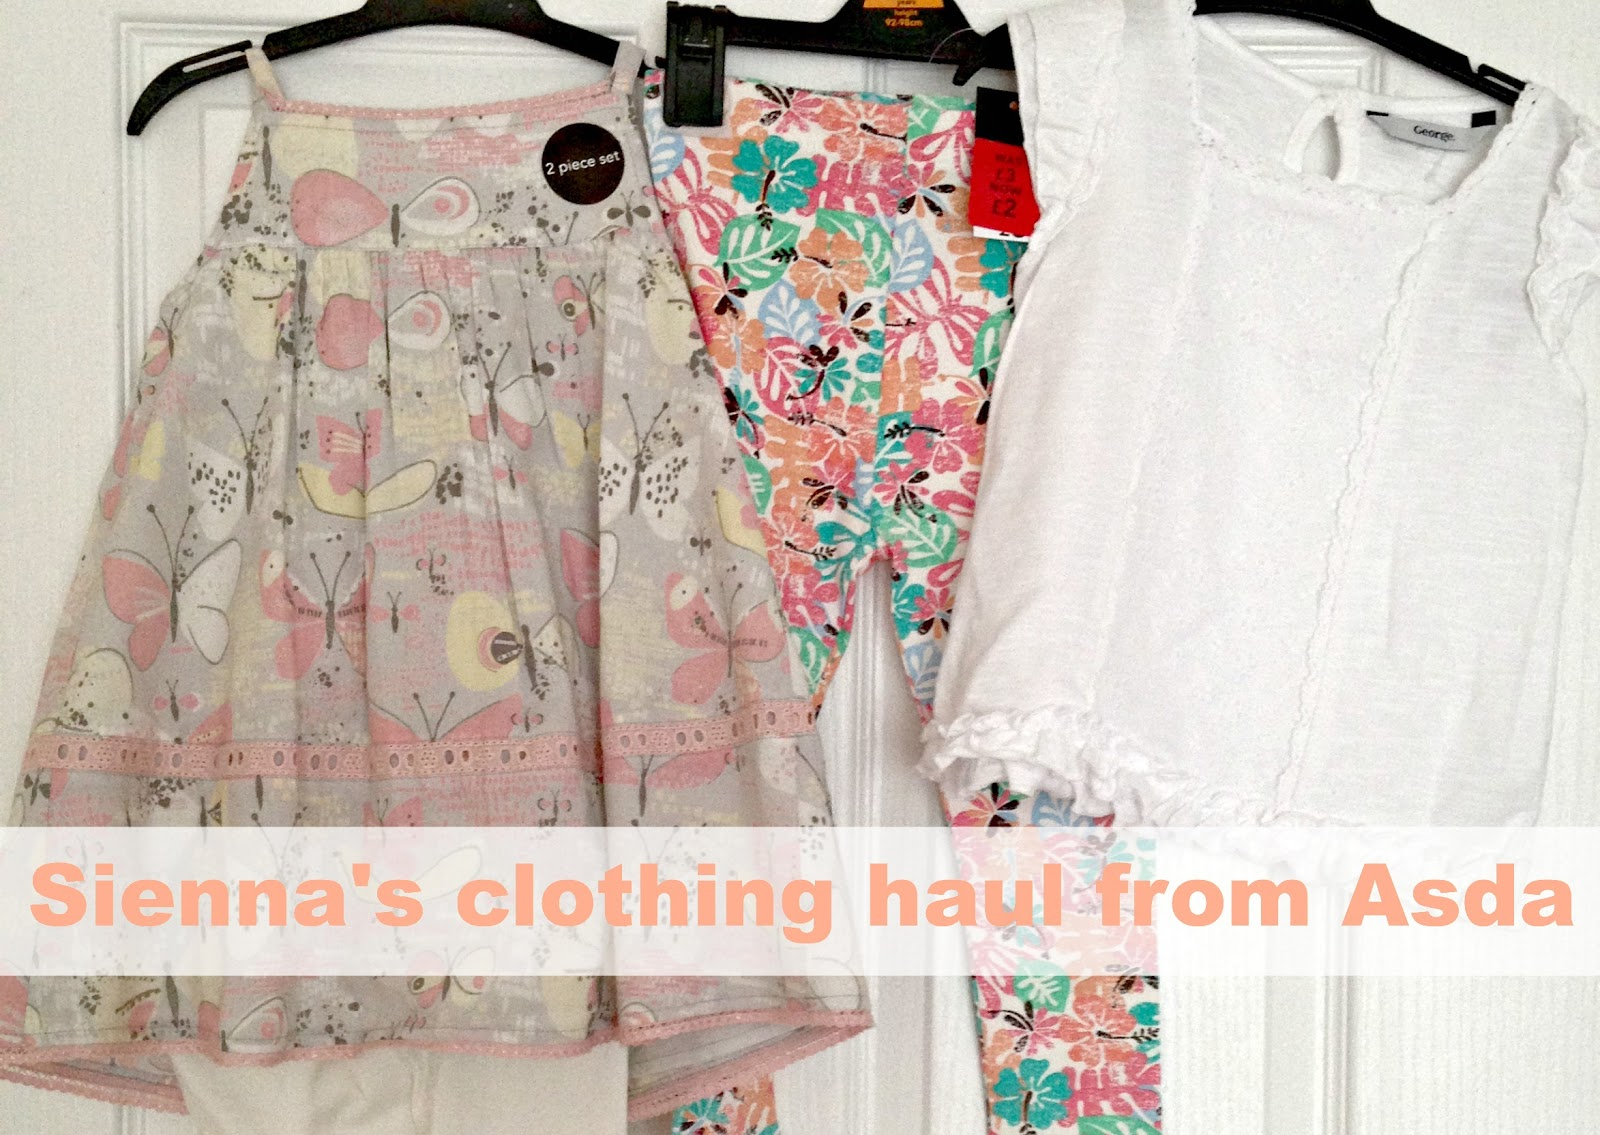 Sienna's clothing haul from Asda!